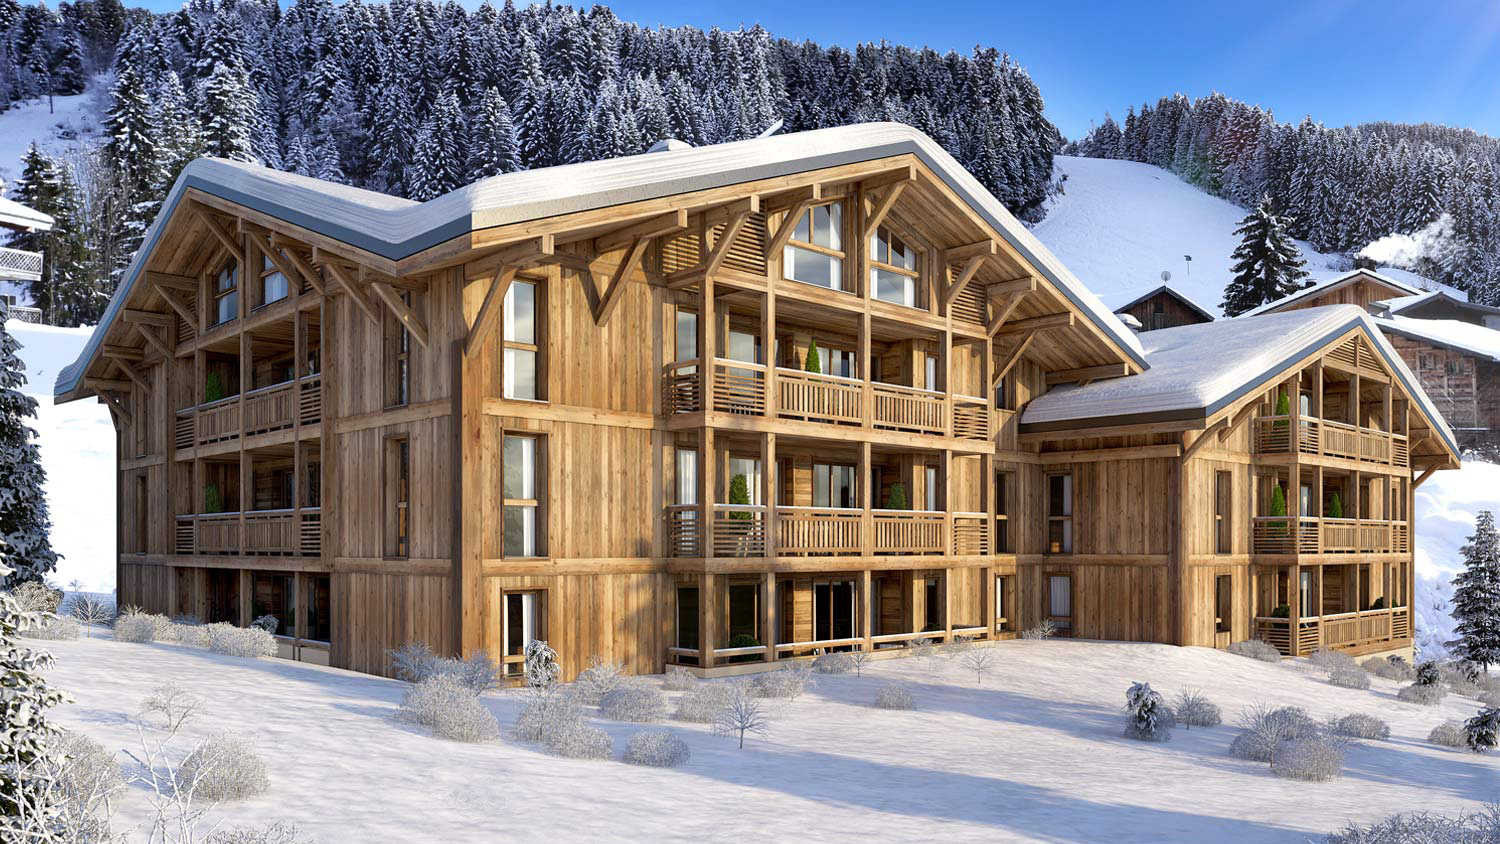 Le Genepi Apartments, France